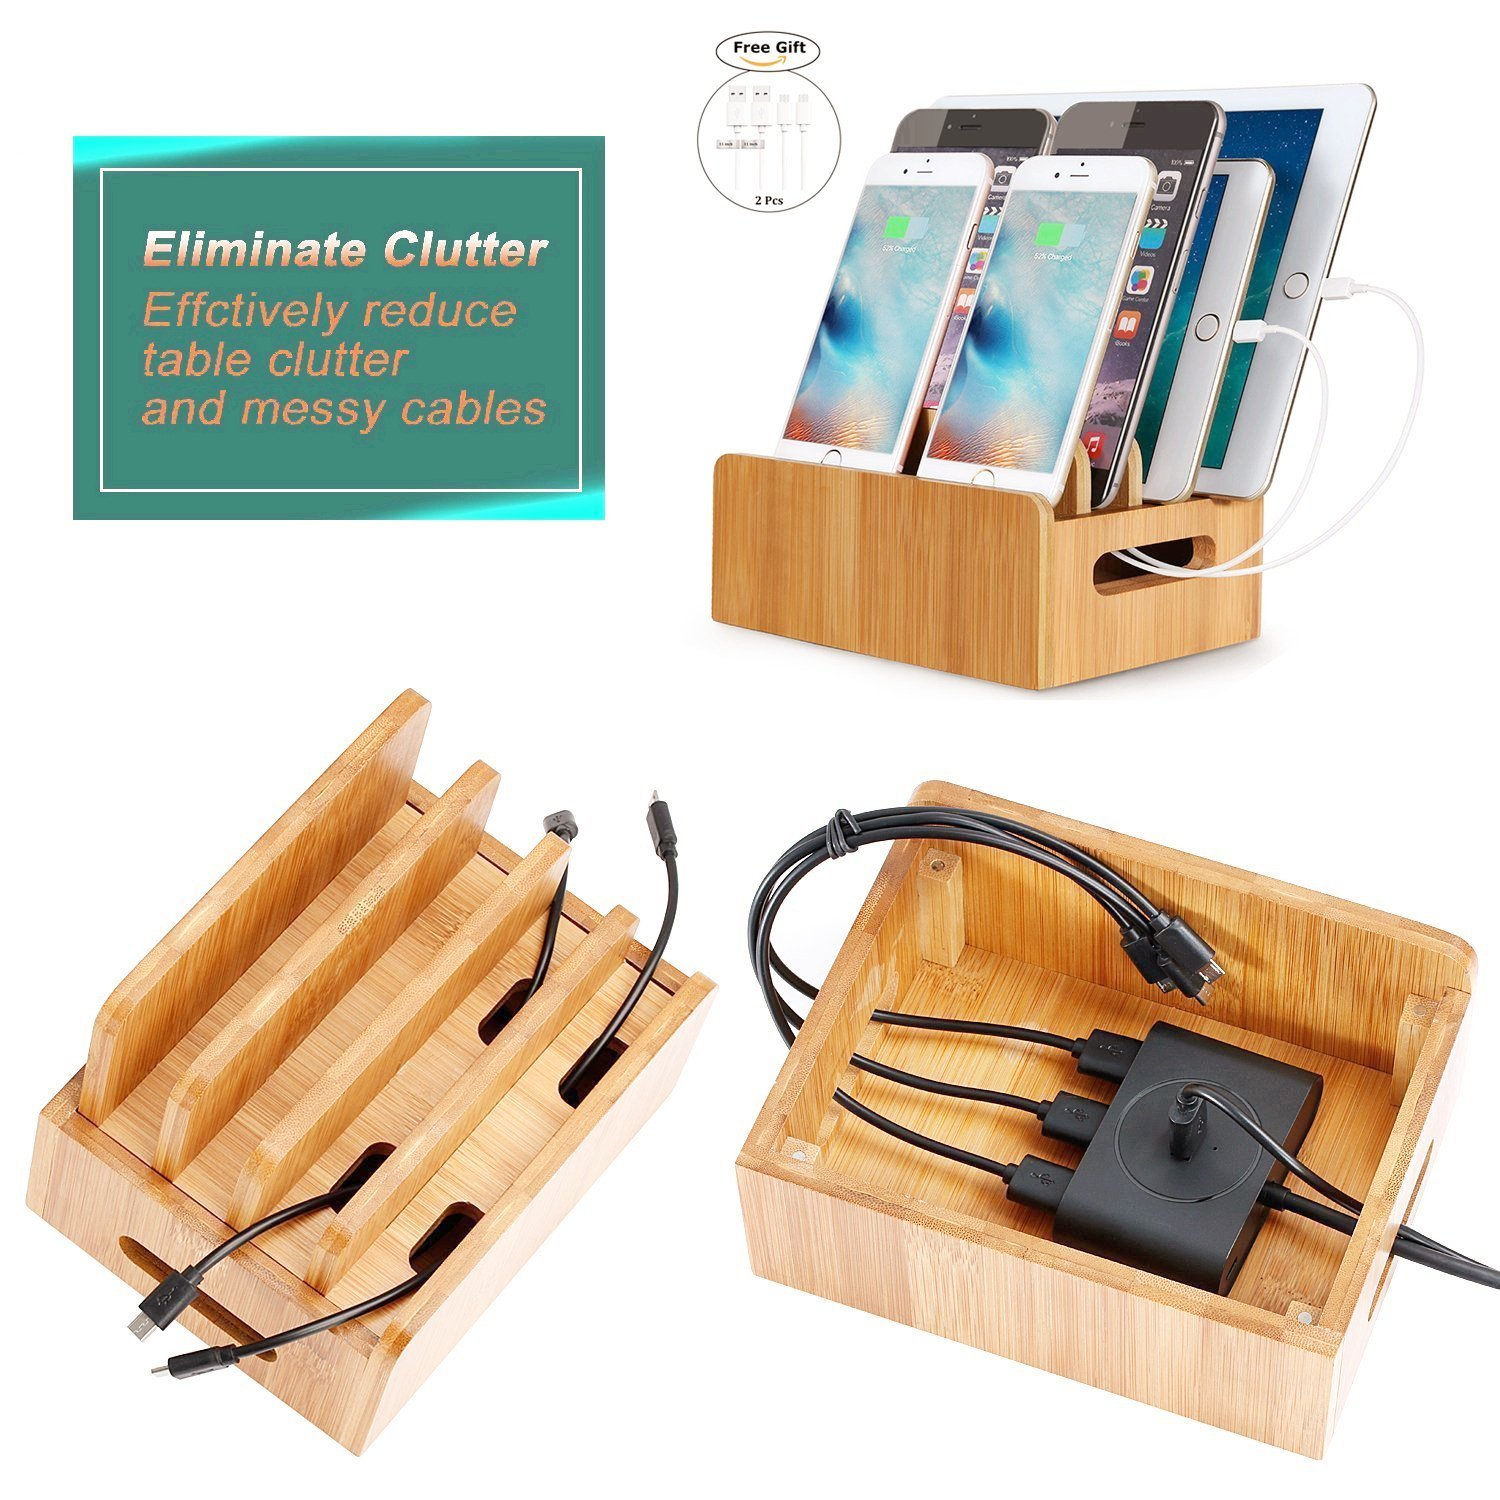 Firstbuy Multi Device Bamboo Charging Station Original Electronics Charging Station & Organizer for iPad, iPhone,Tablets, Smartphones &Cords Organizer Stand&Other Gadgets,Strong Build of Eco Bamboo